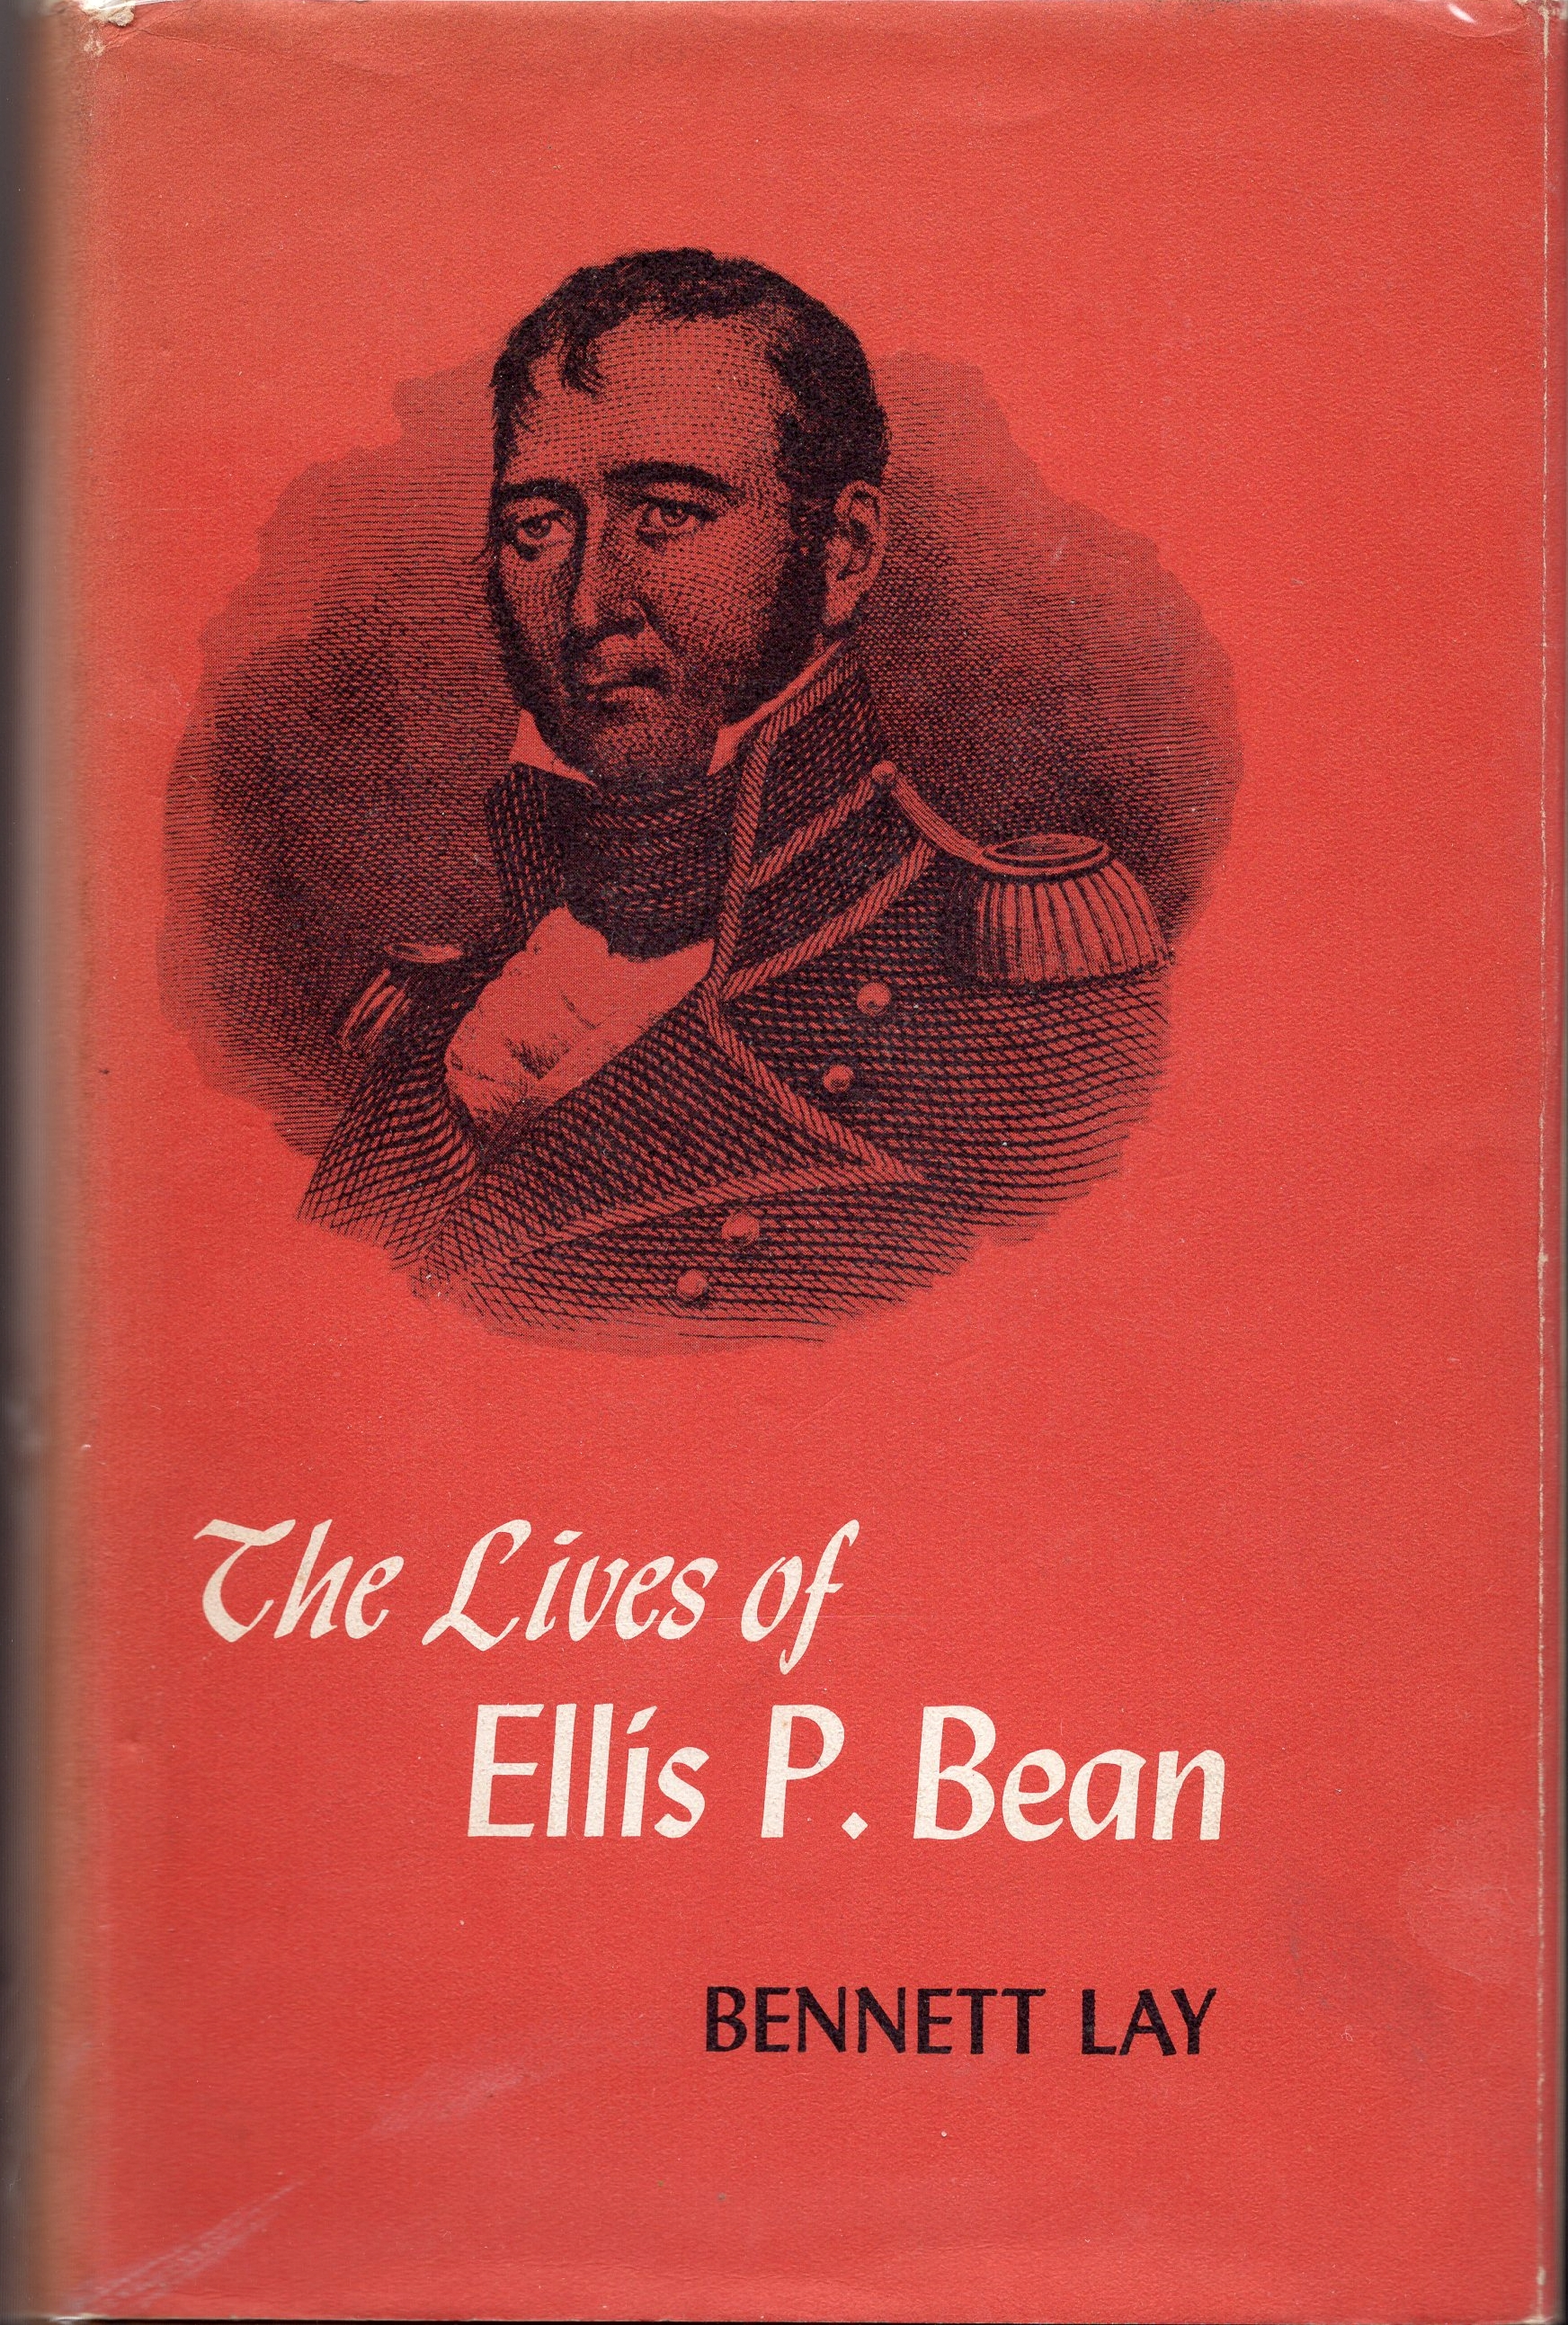 The Lives of Ellis P. Bean by Bennett Lay (1960)